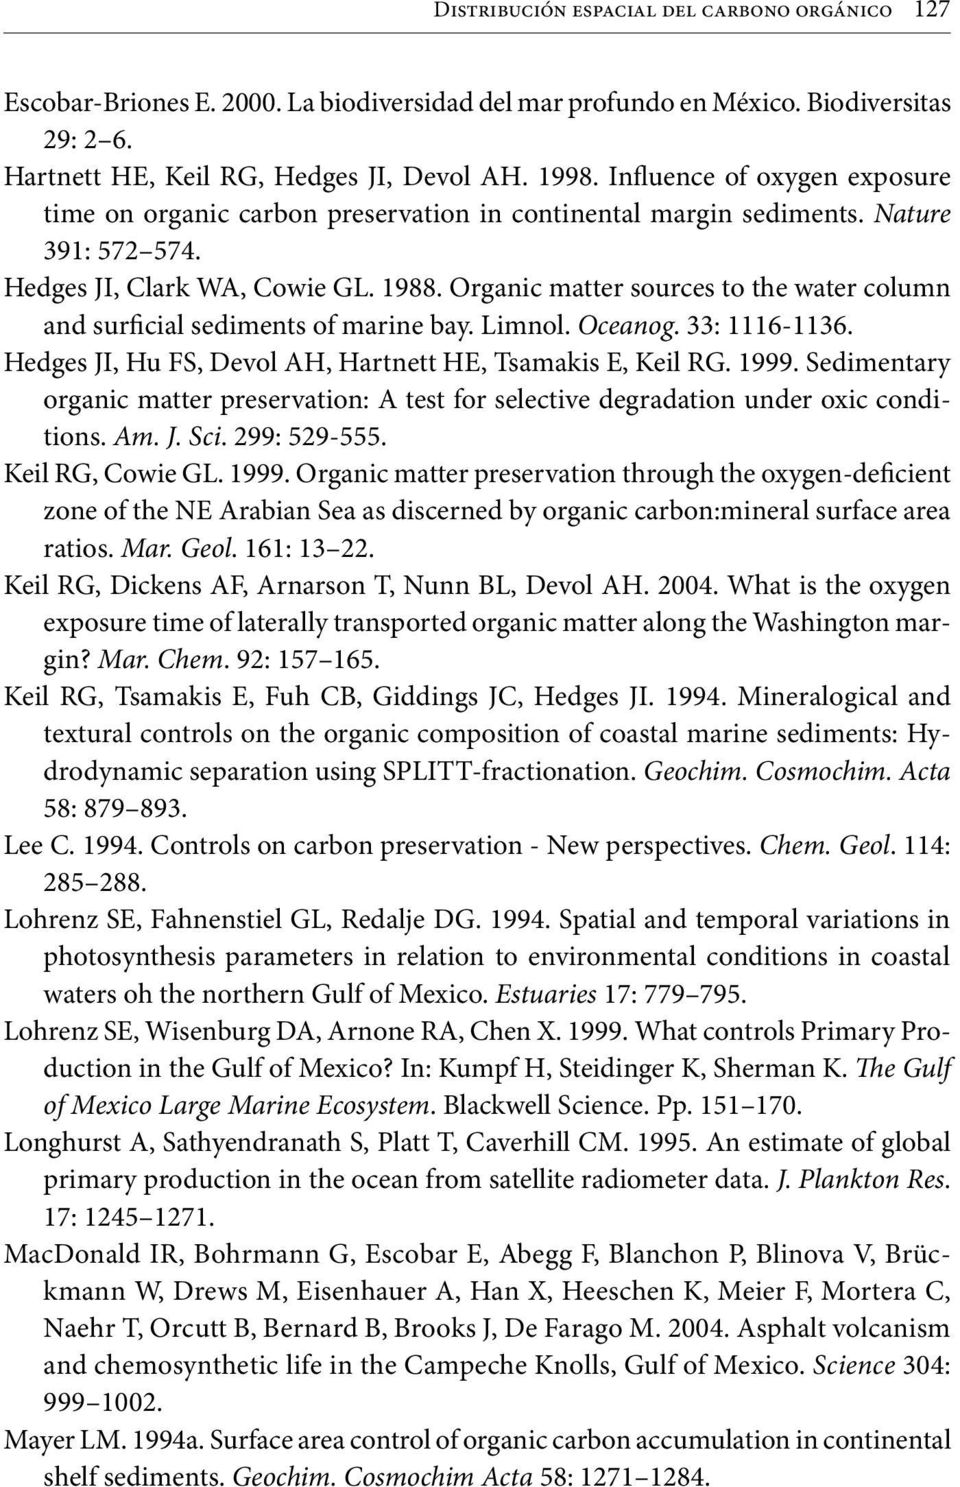 Organic matter sources to the water column and surficial sediments of marine bay. Limnol. Oceanog. 33: 1116-1136. Hedges JI, Hu FS, Devol AH, Hartnett HE, Tsamakis E, Keil RG. 1999.